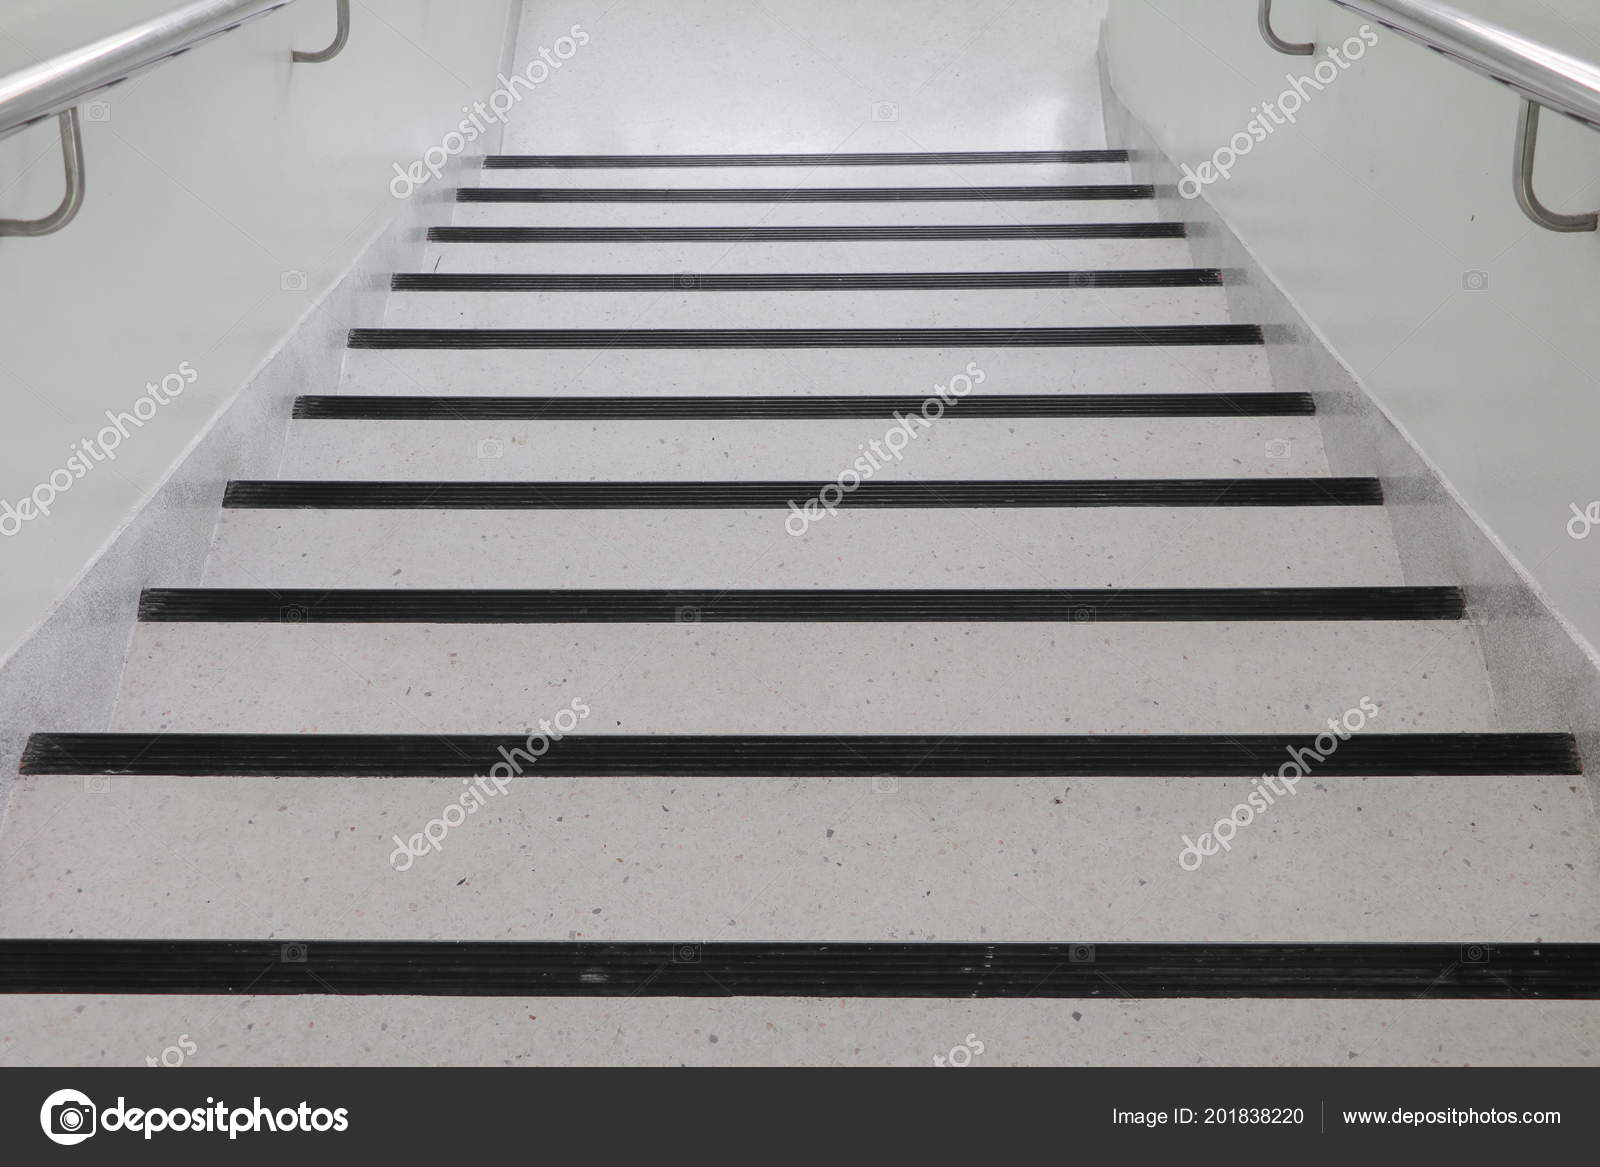 Terrazzo Floor Stairs Walkway Select Focus Shallow Depth